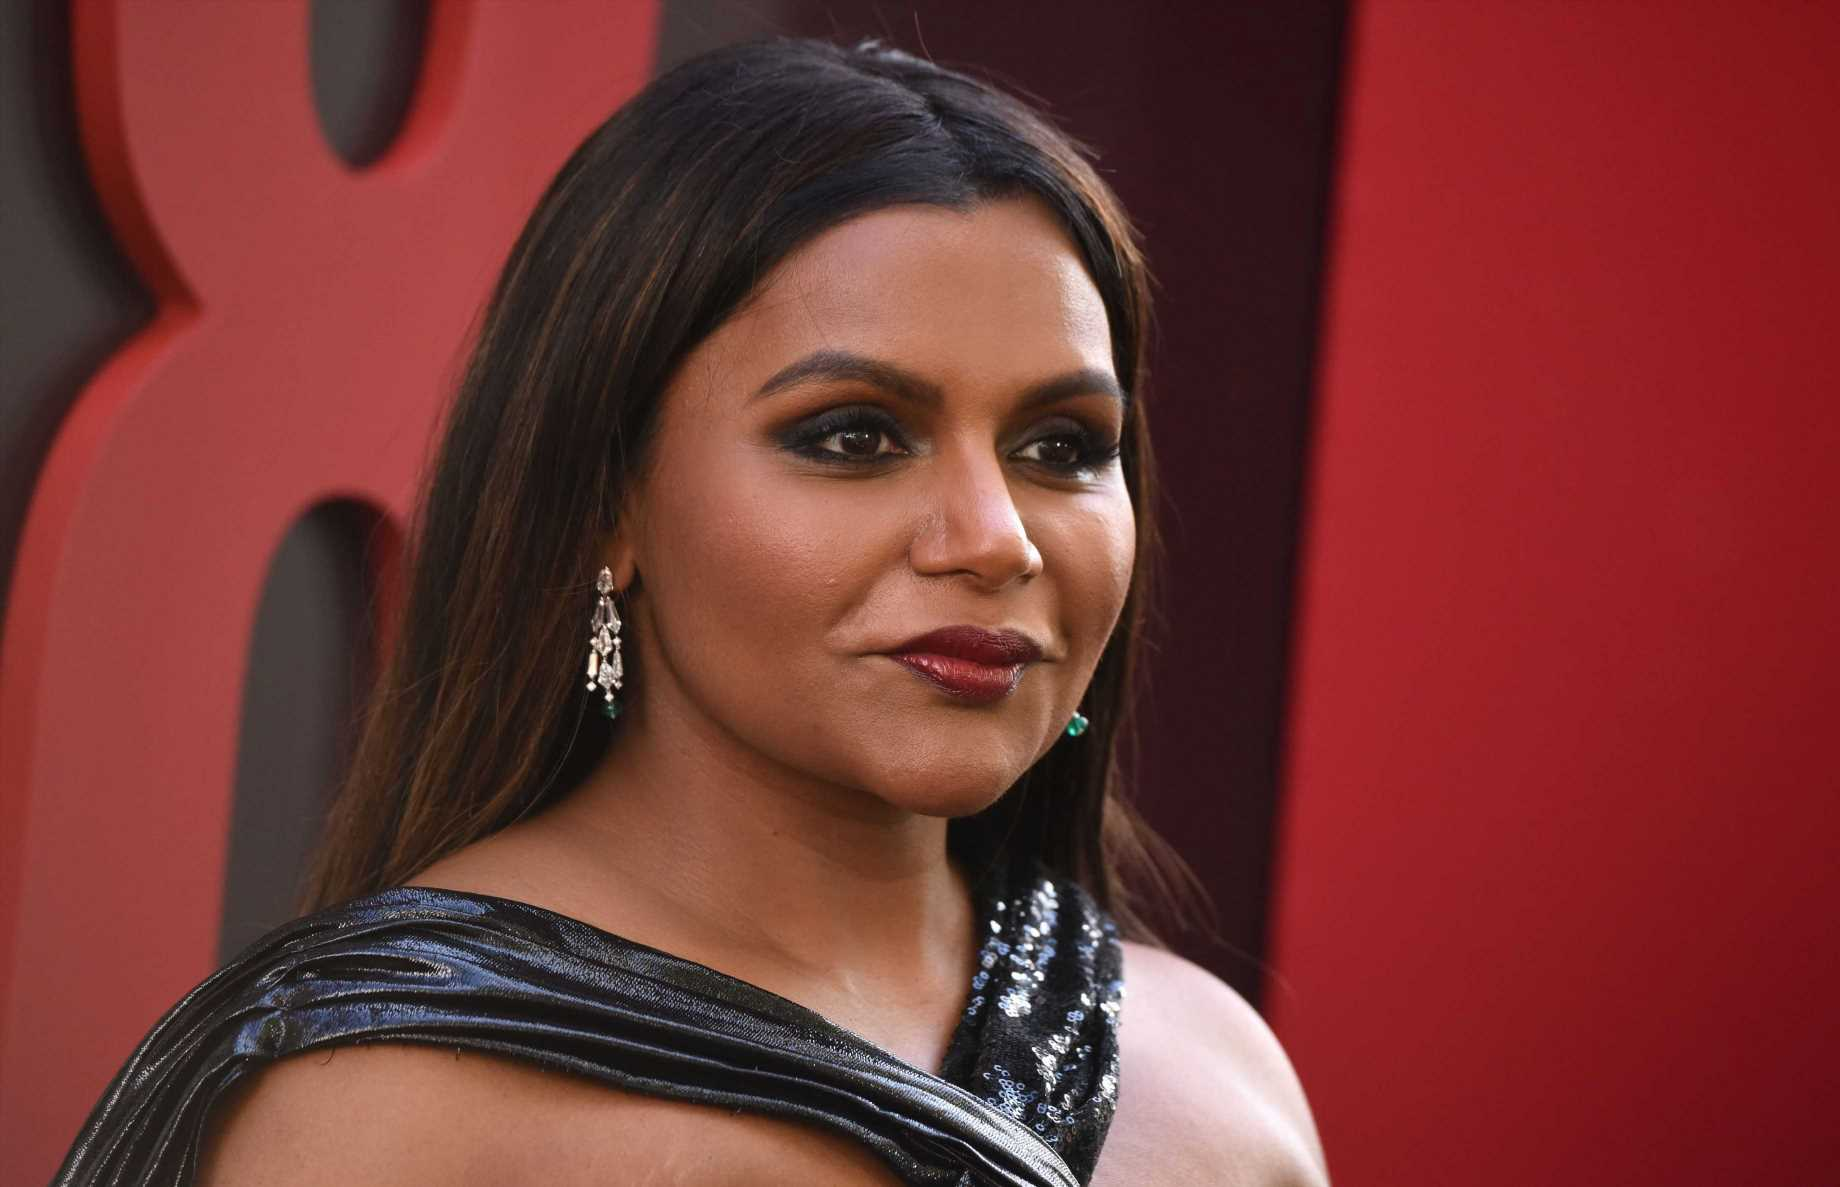 'Ms. Marvel': Mindy Kaling Has Talked to Marvel About Bringing the Pakistani-American Superhero to the Screen